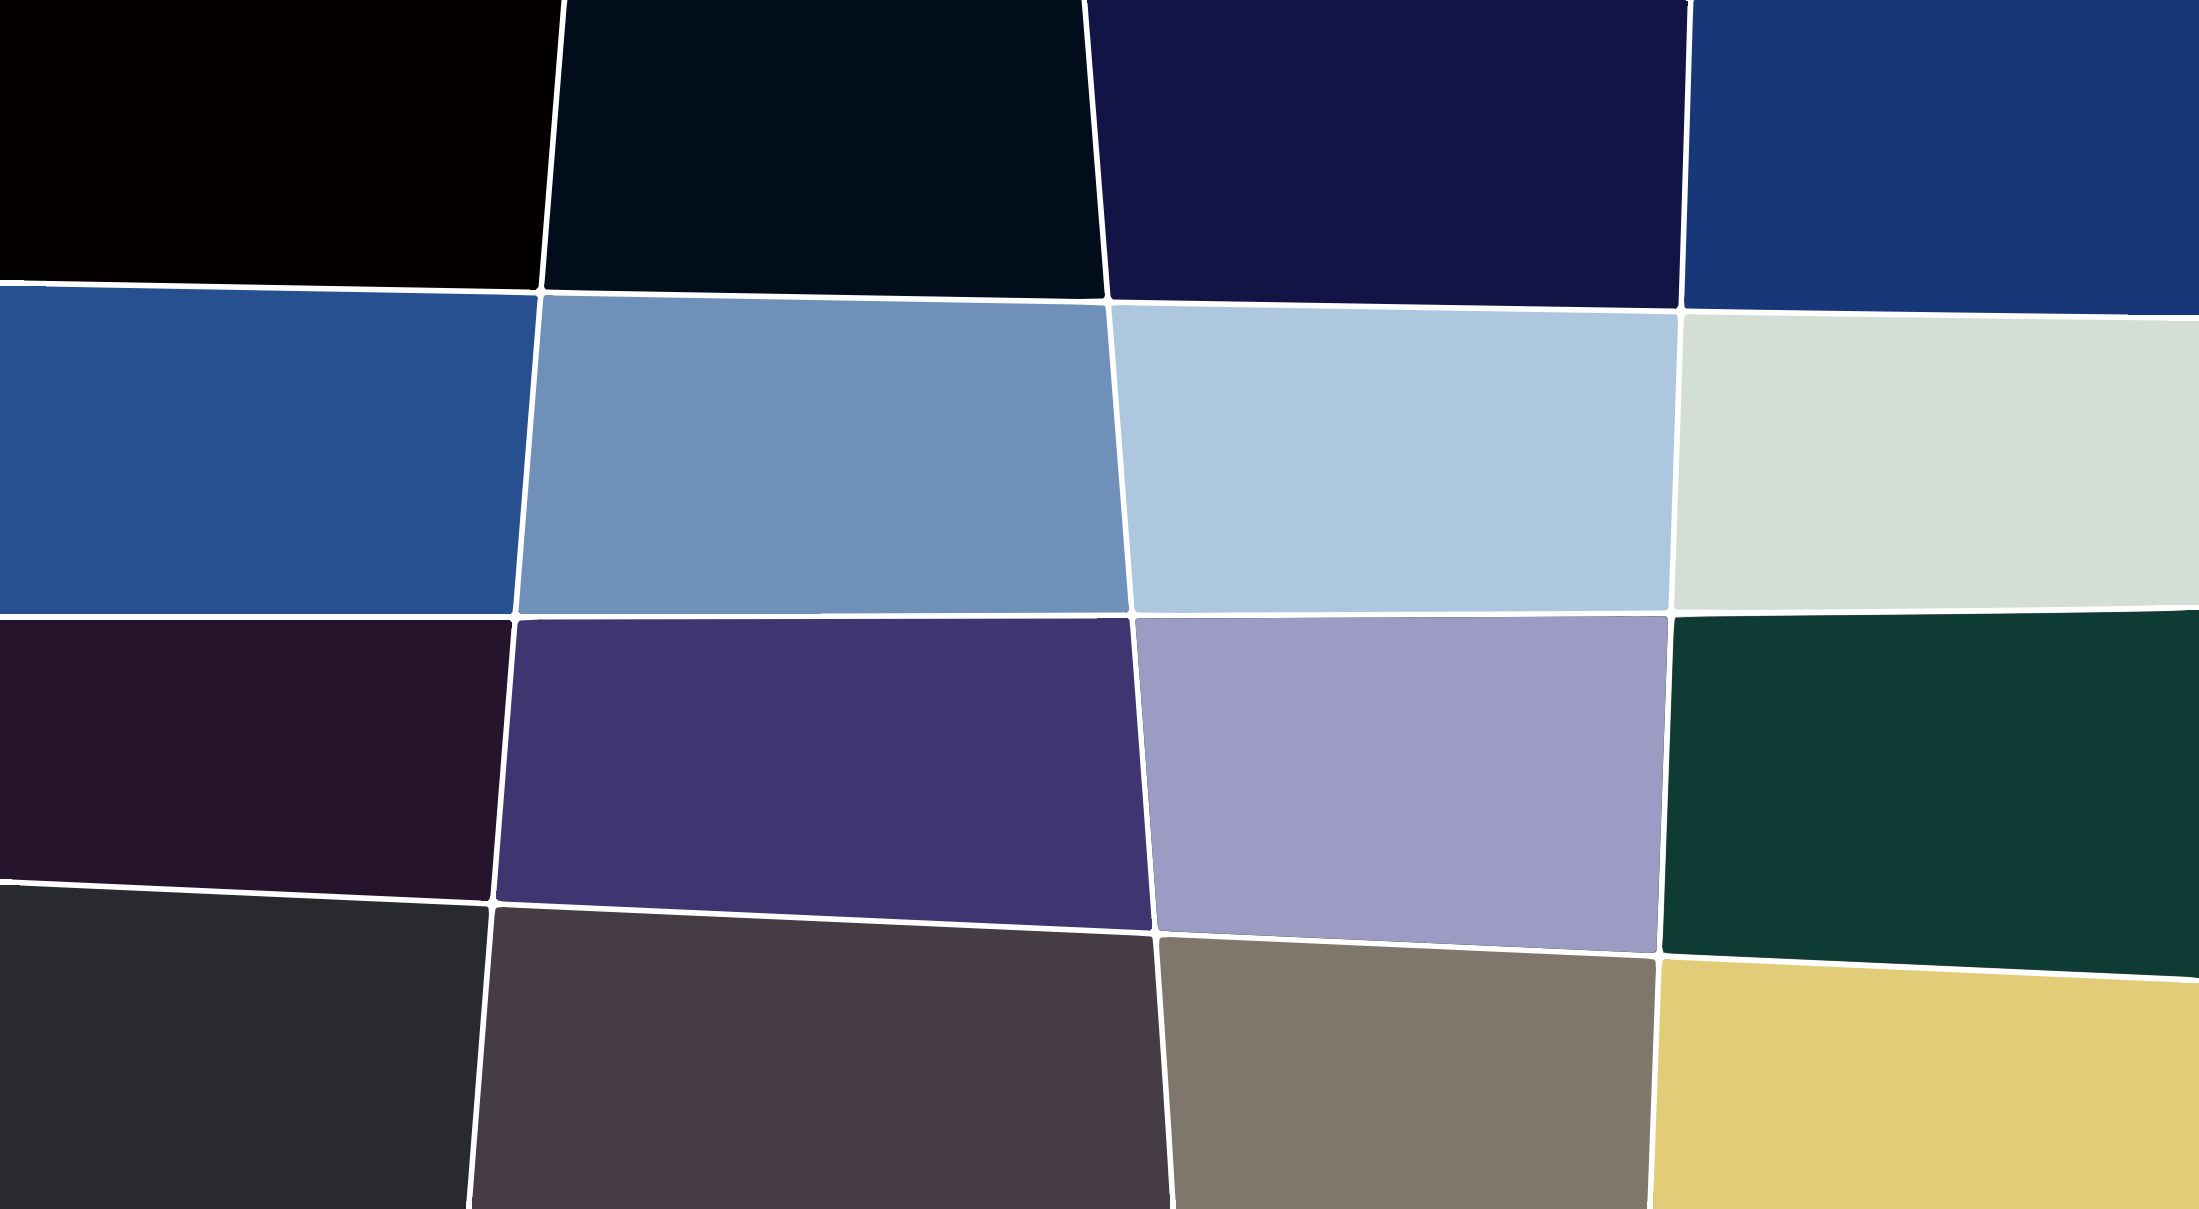 4034324_147538232182_TomsHungryPalette.png